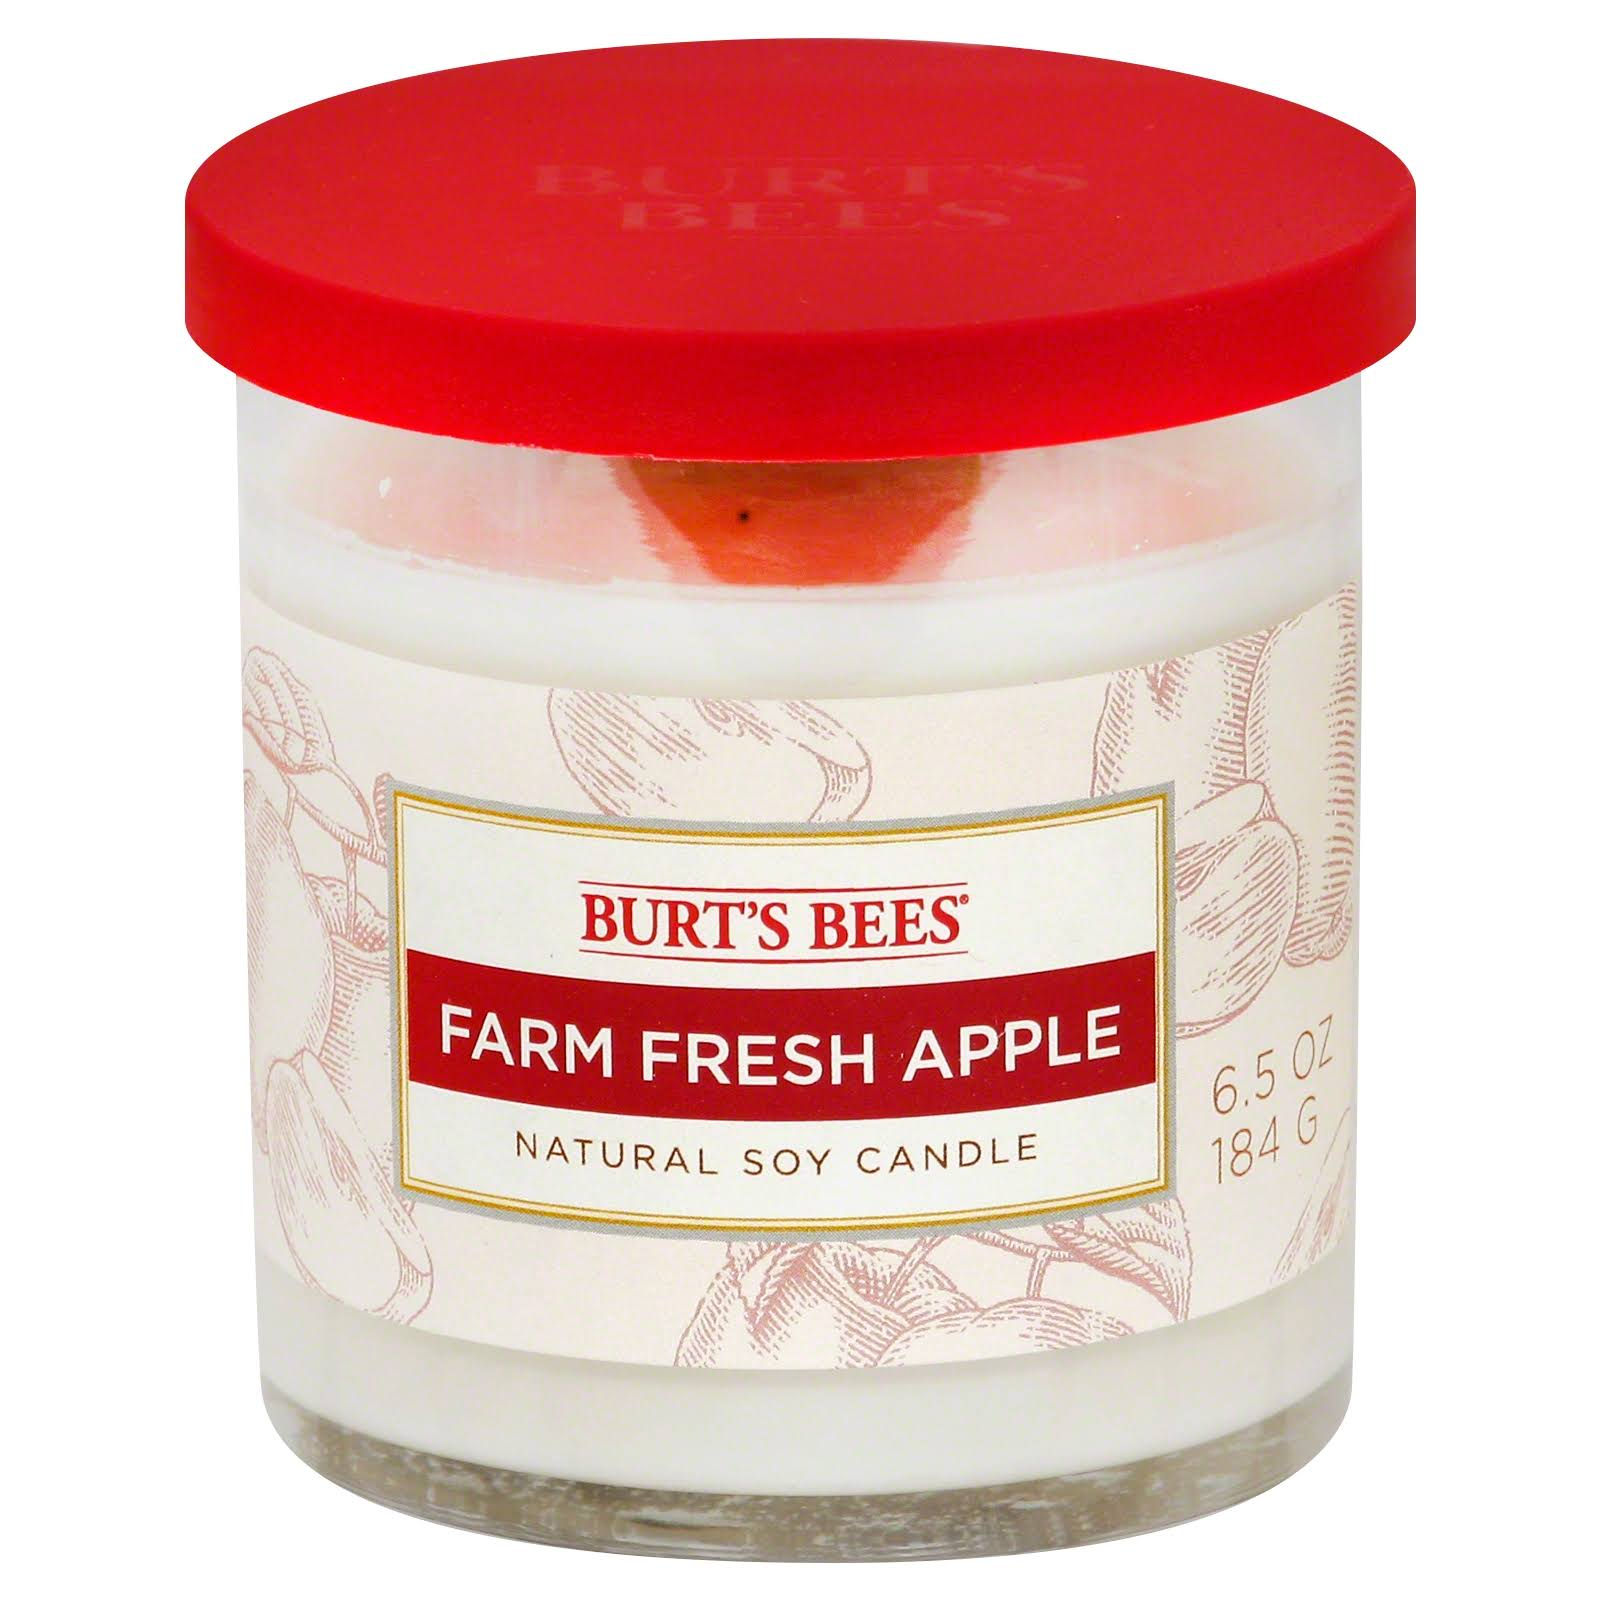 Burt's Bees Small Jar Candle - Farm Fresh Apple, 6.5oz